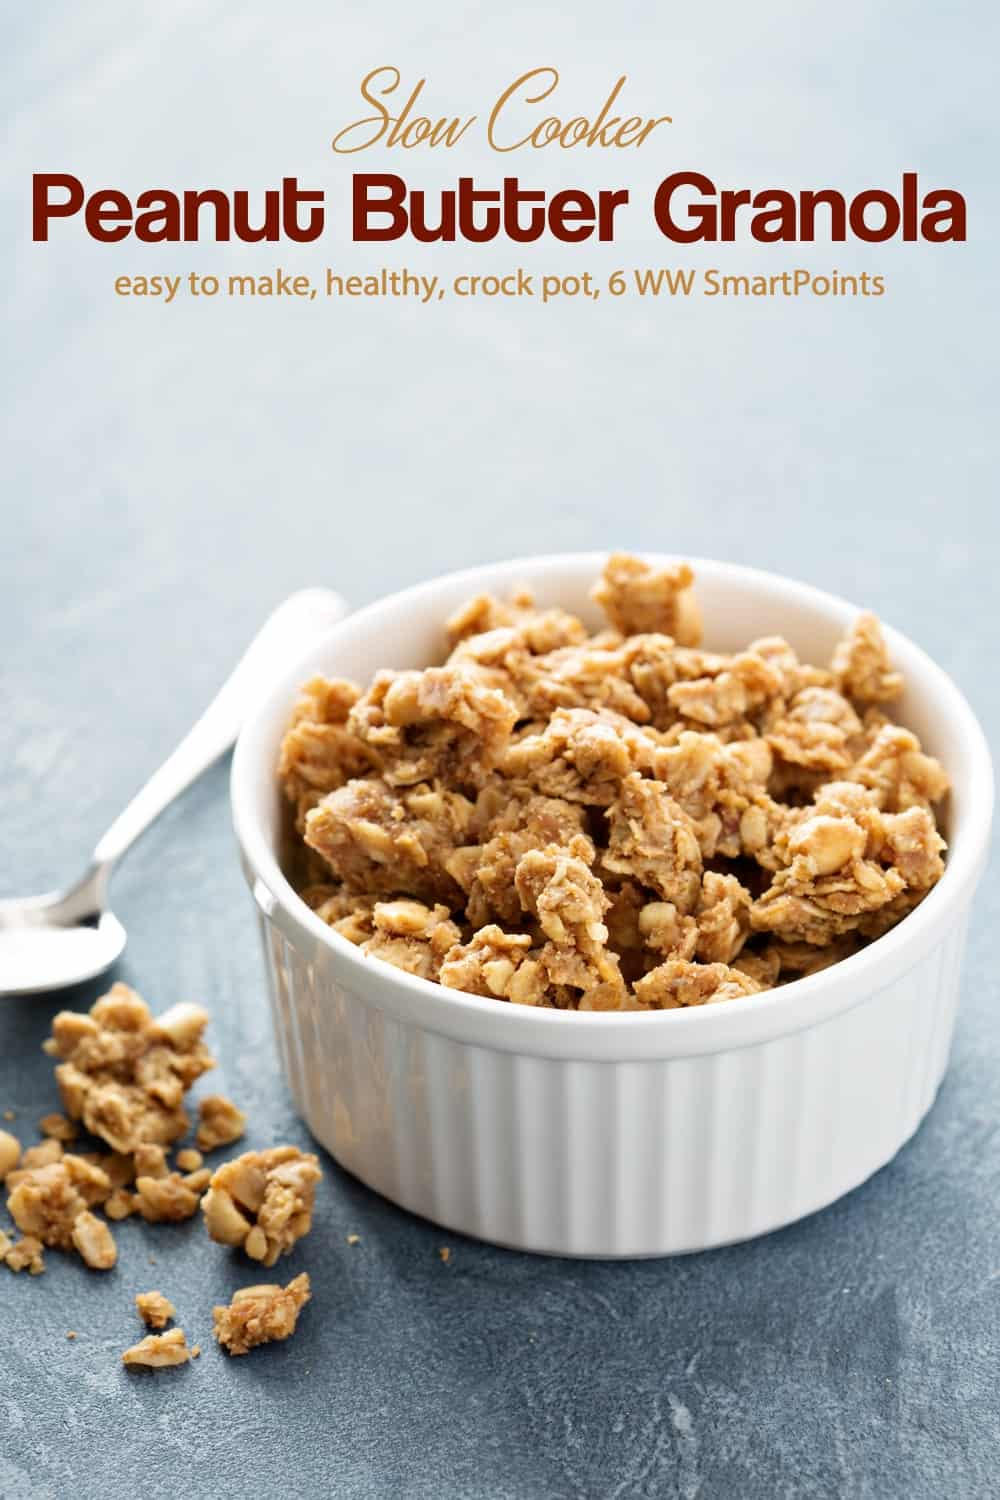 Crunchy, delicious and filled with all my favorite things, like coconut, sunflower seeds and peanuts, this slow cooker peanut butter granola is a winner with just 162 calories and 6 WW Freestyle SmartPoints! #slowcookerpeanutbuttergranola #peanutbuttergranola #granola #weightwatchers #ww #wwfamily #slowcooker #crockpot